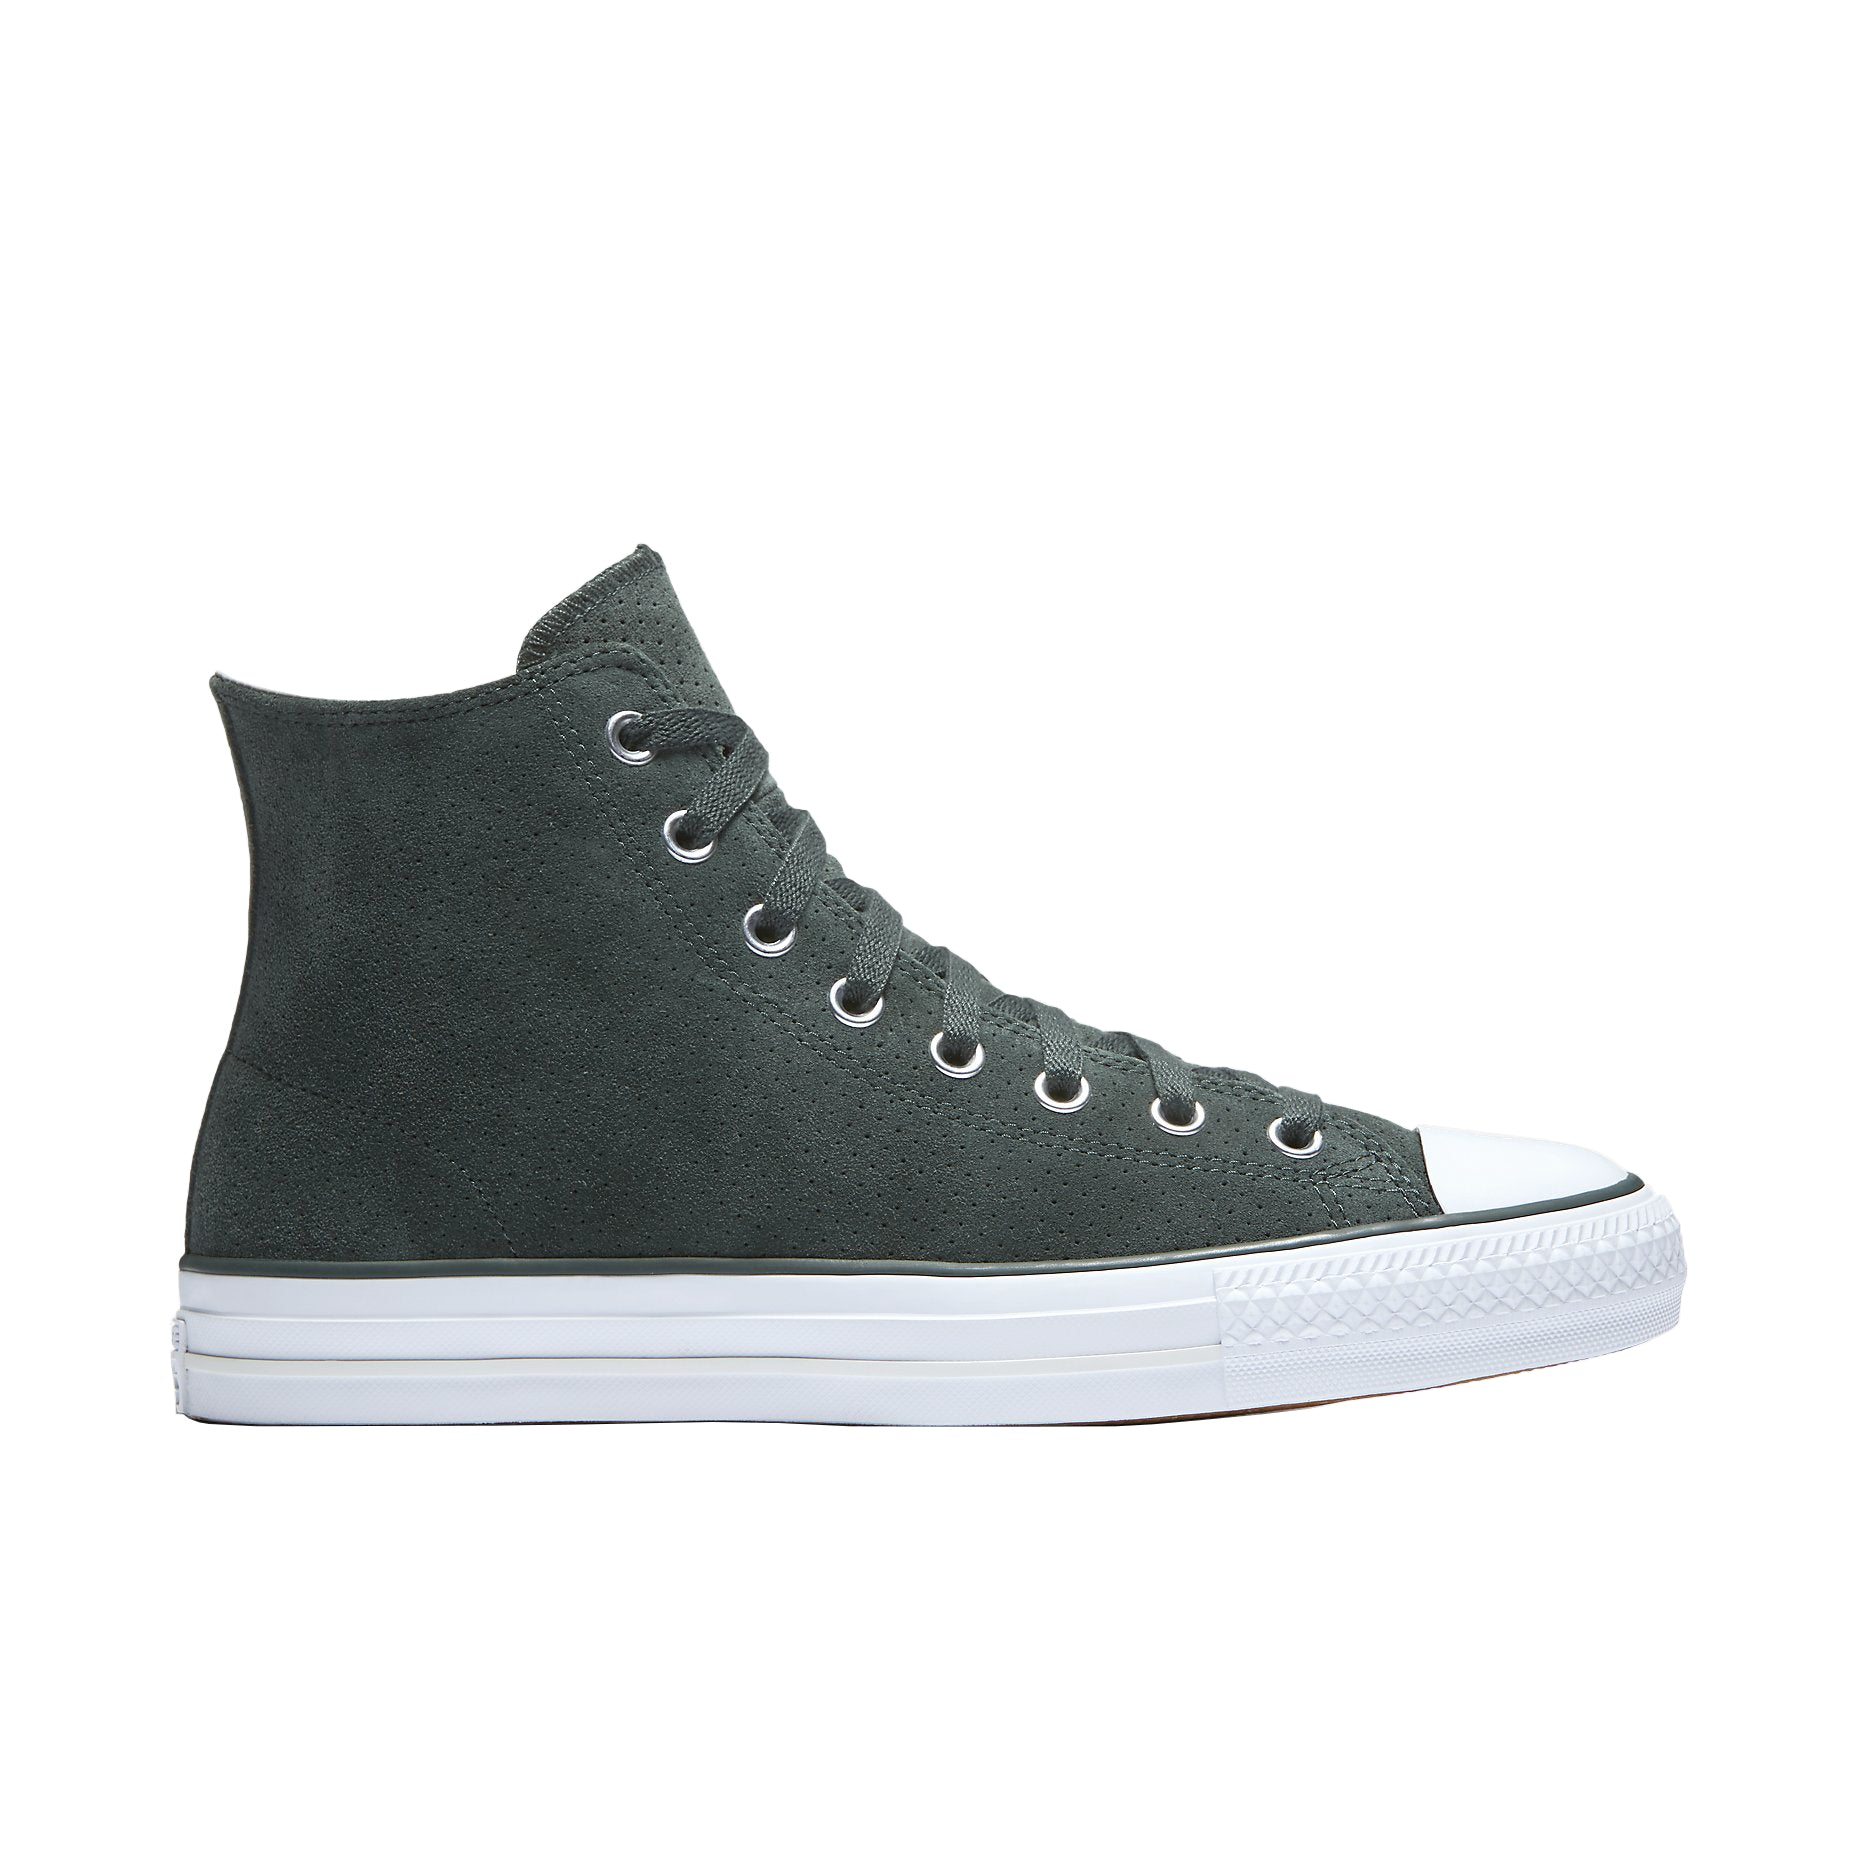 Converse CTAS Pro Perforated Suede High